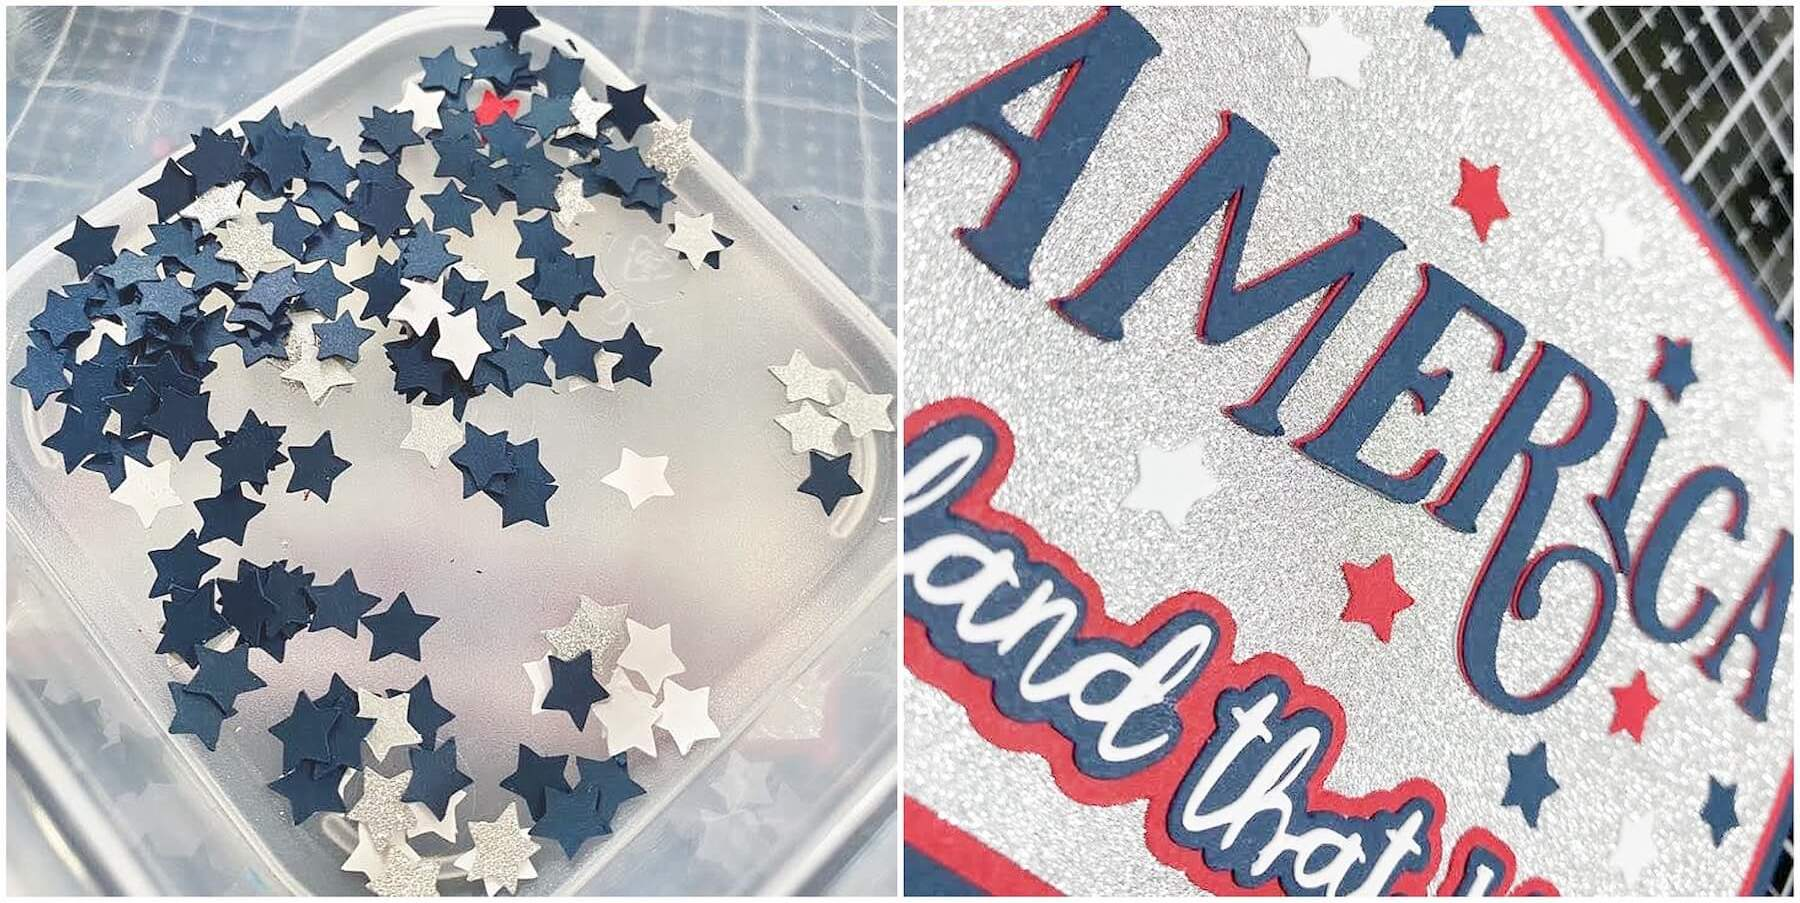 Gluing star embellishments on card